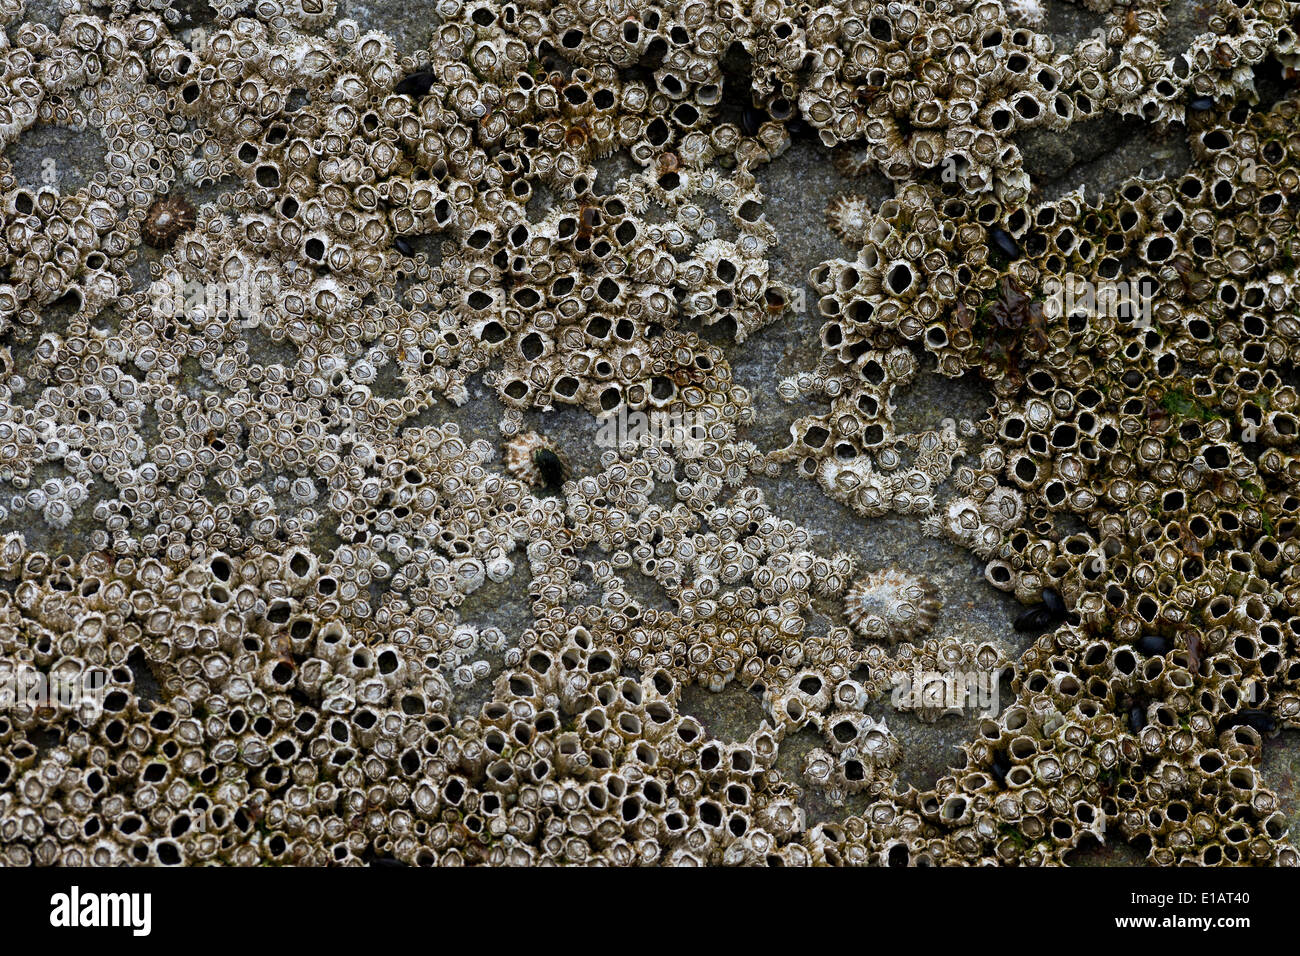 Barnacles (Balanidae) and limpets (Patellidae) in the surf zone on a rock, Faroe Islands, Denmark Stock Photo